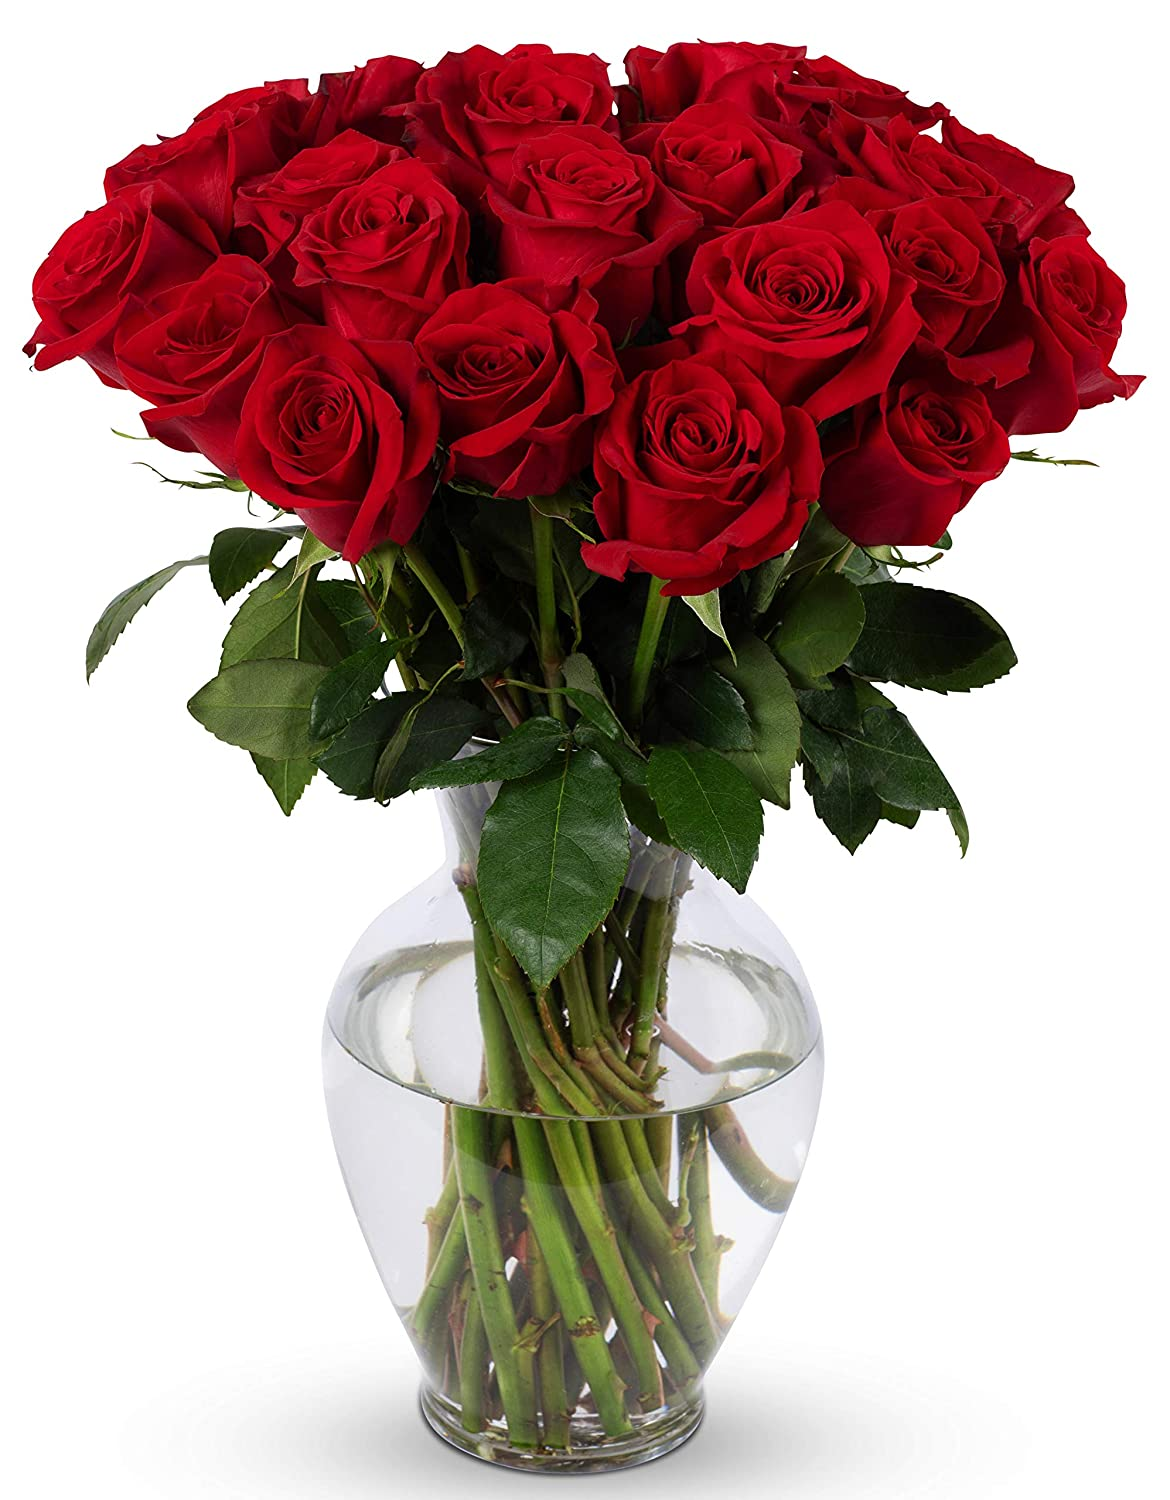 254 & Benchmark Bouquets 2 Dozen Red Roses With Vase (Fresh Cut Flowers)